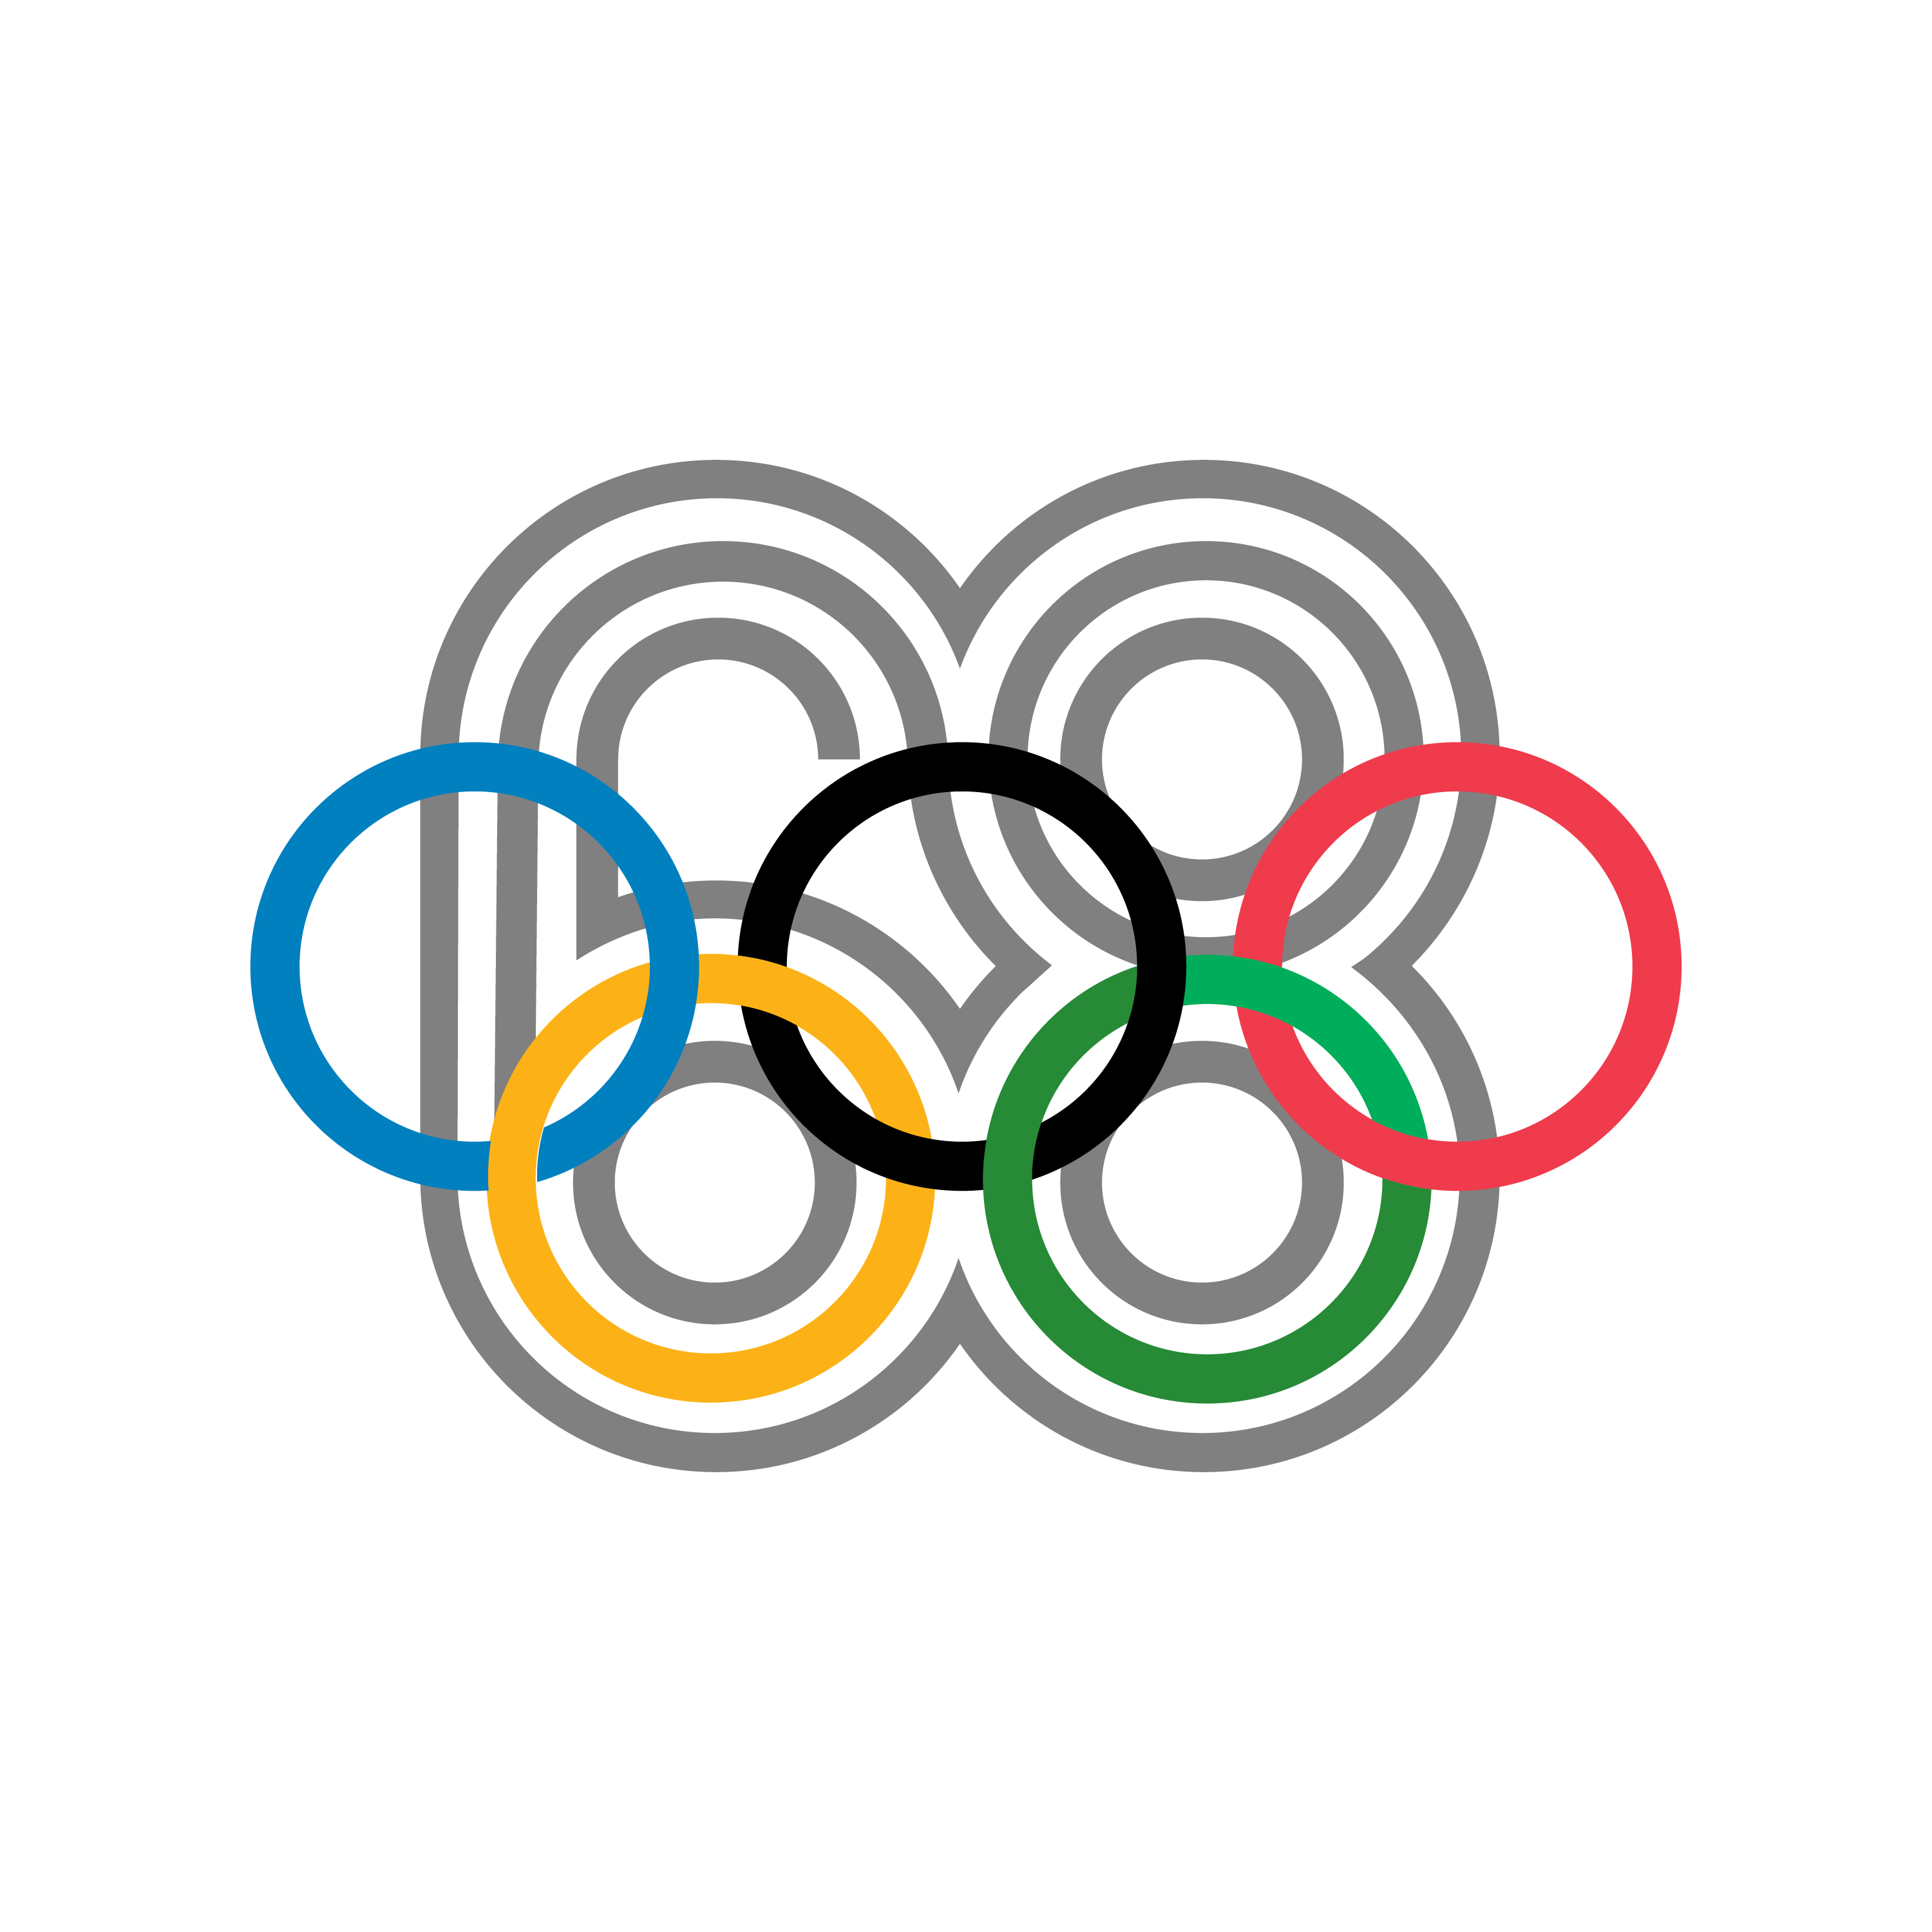 Mexico City 1968 Olympics Designer Lance Wyman Firm Mexico City 1968 Olympic Organizing Committee In Graphic Design Logo Branding Design Logo Logo Design